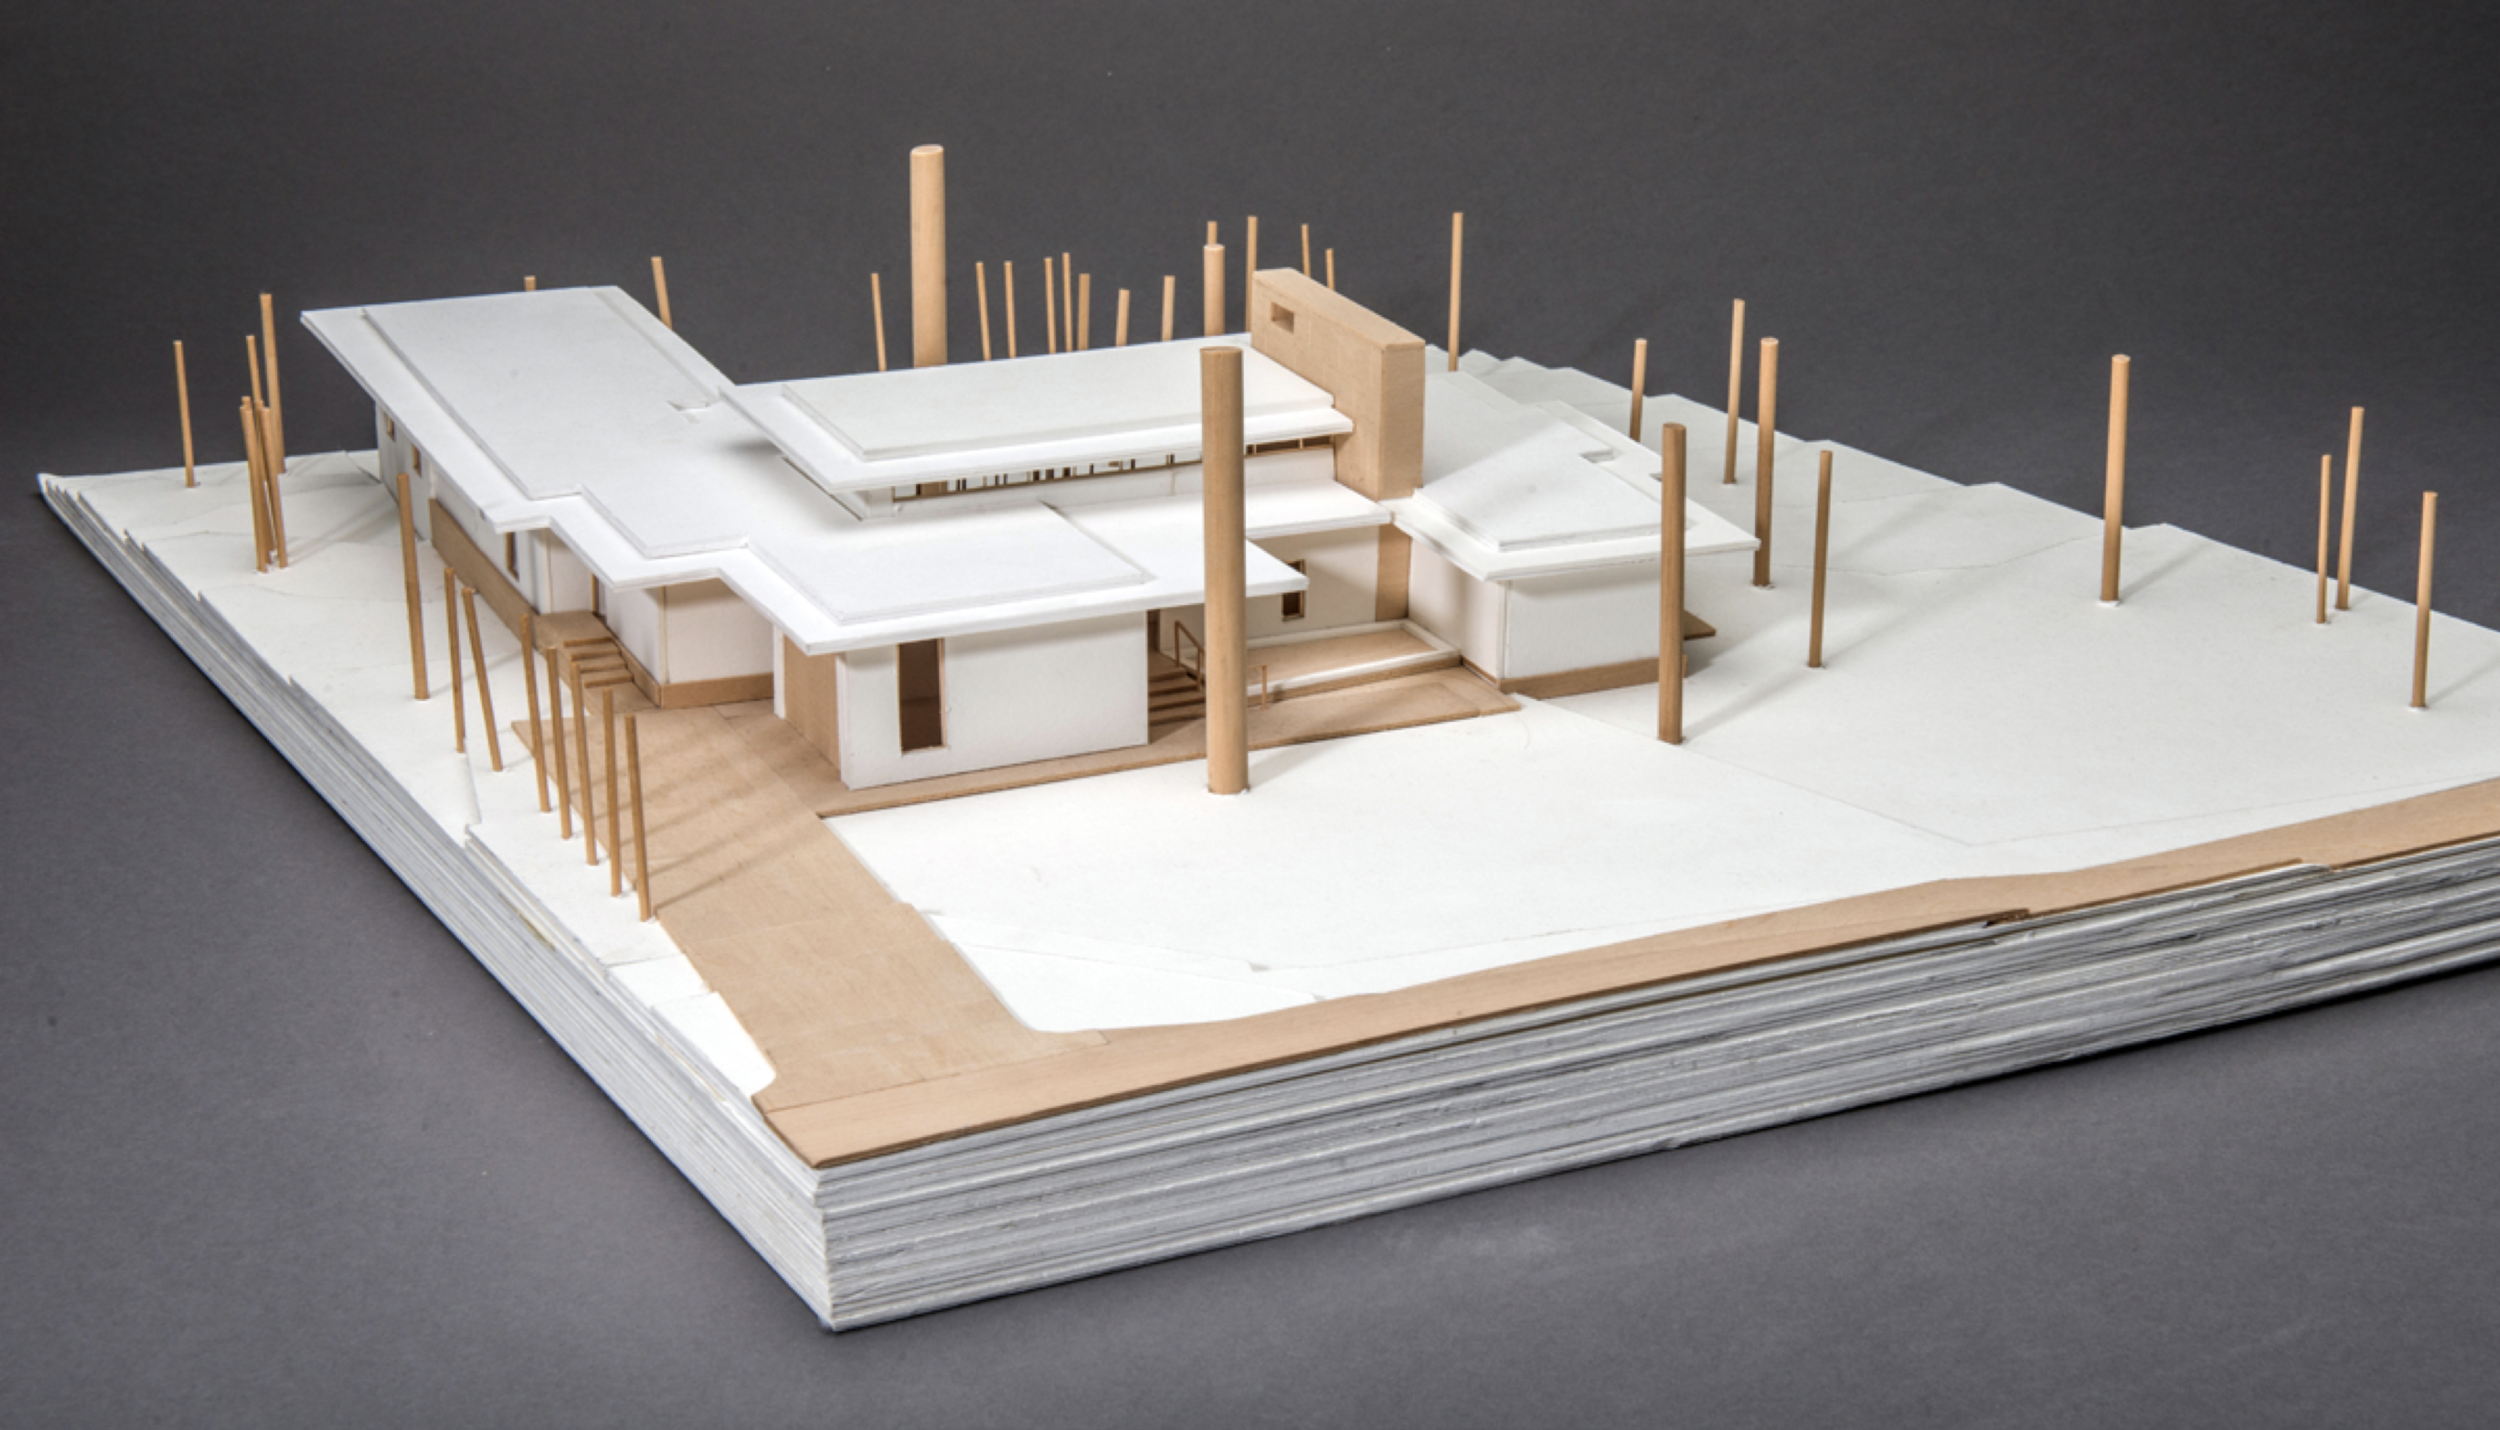 Image of  Kenny Lane  project model provided by  Michael Malone of Malone Maxwell Borson Architects